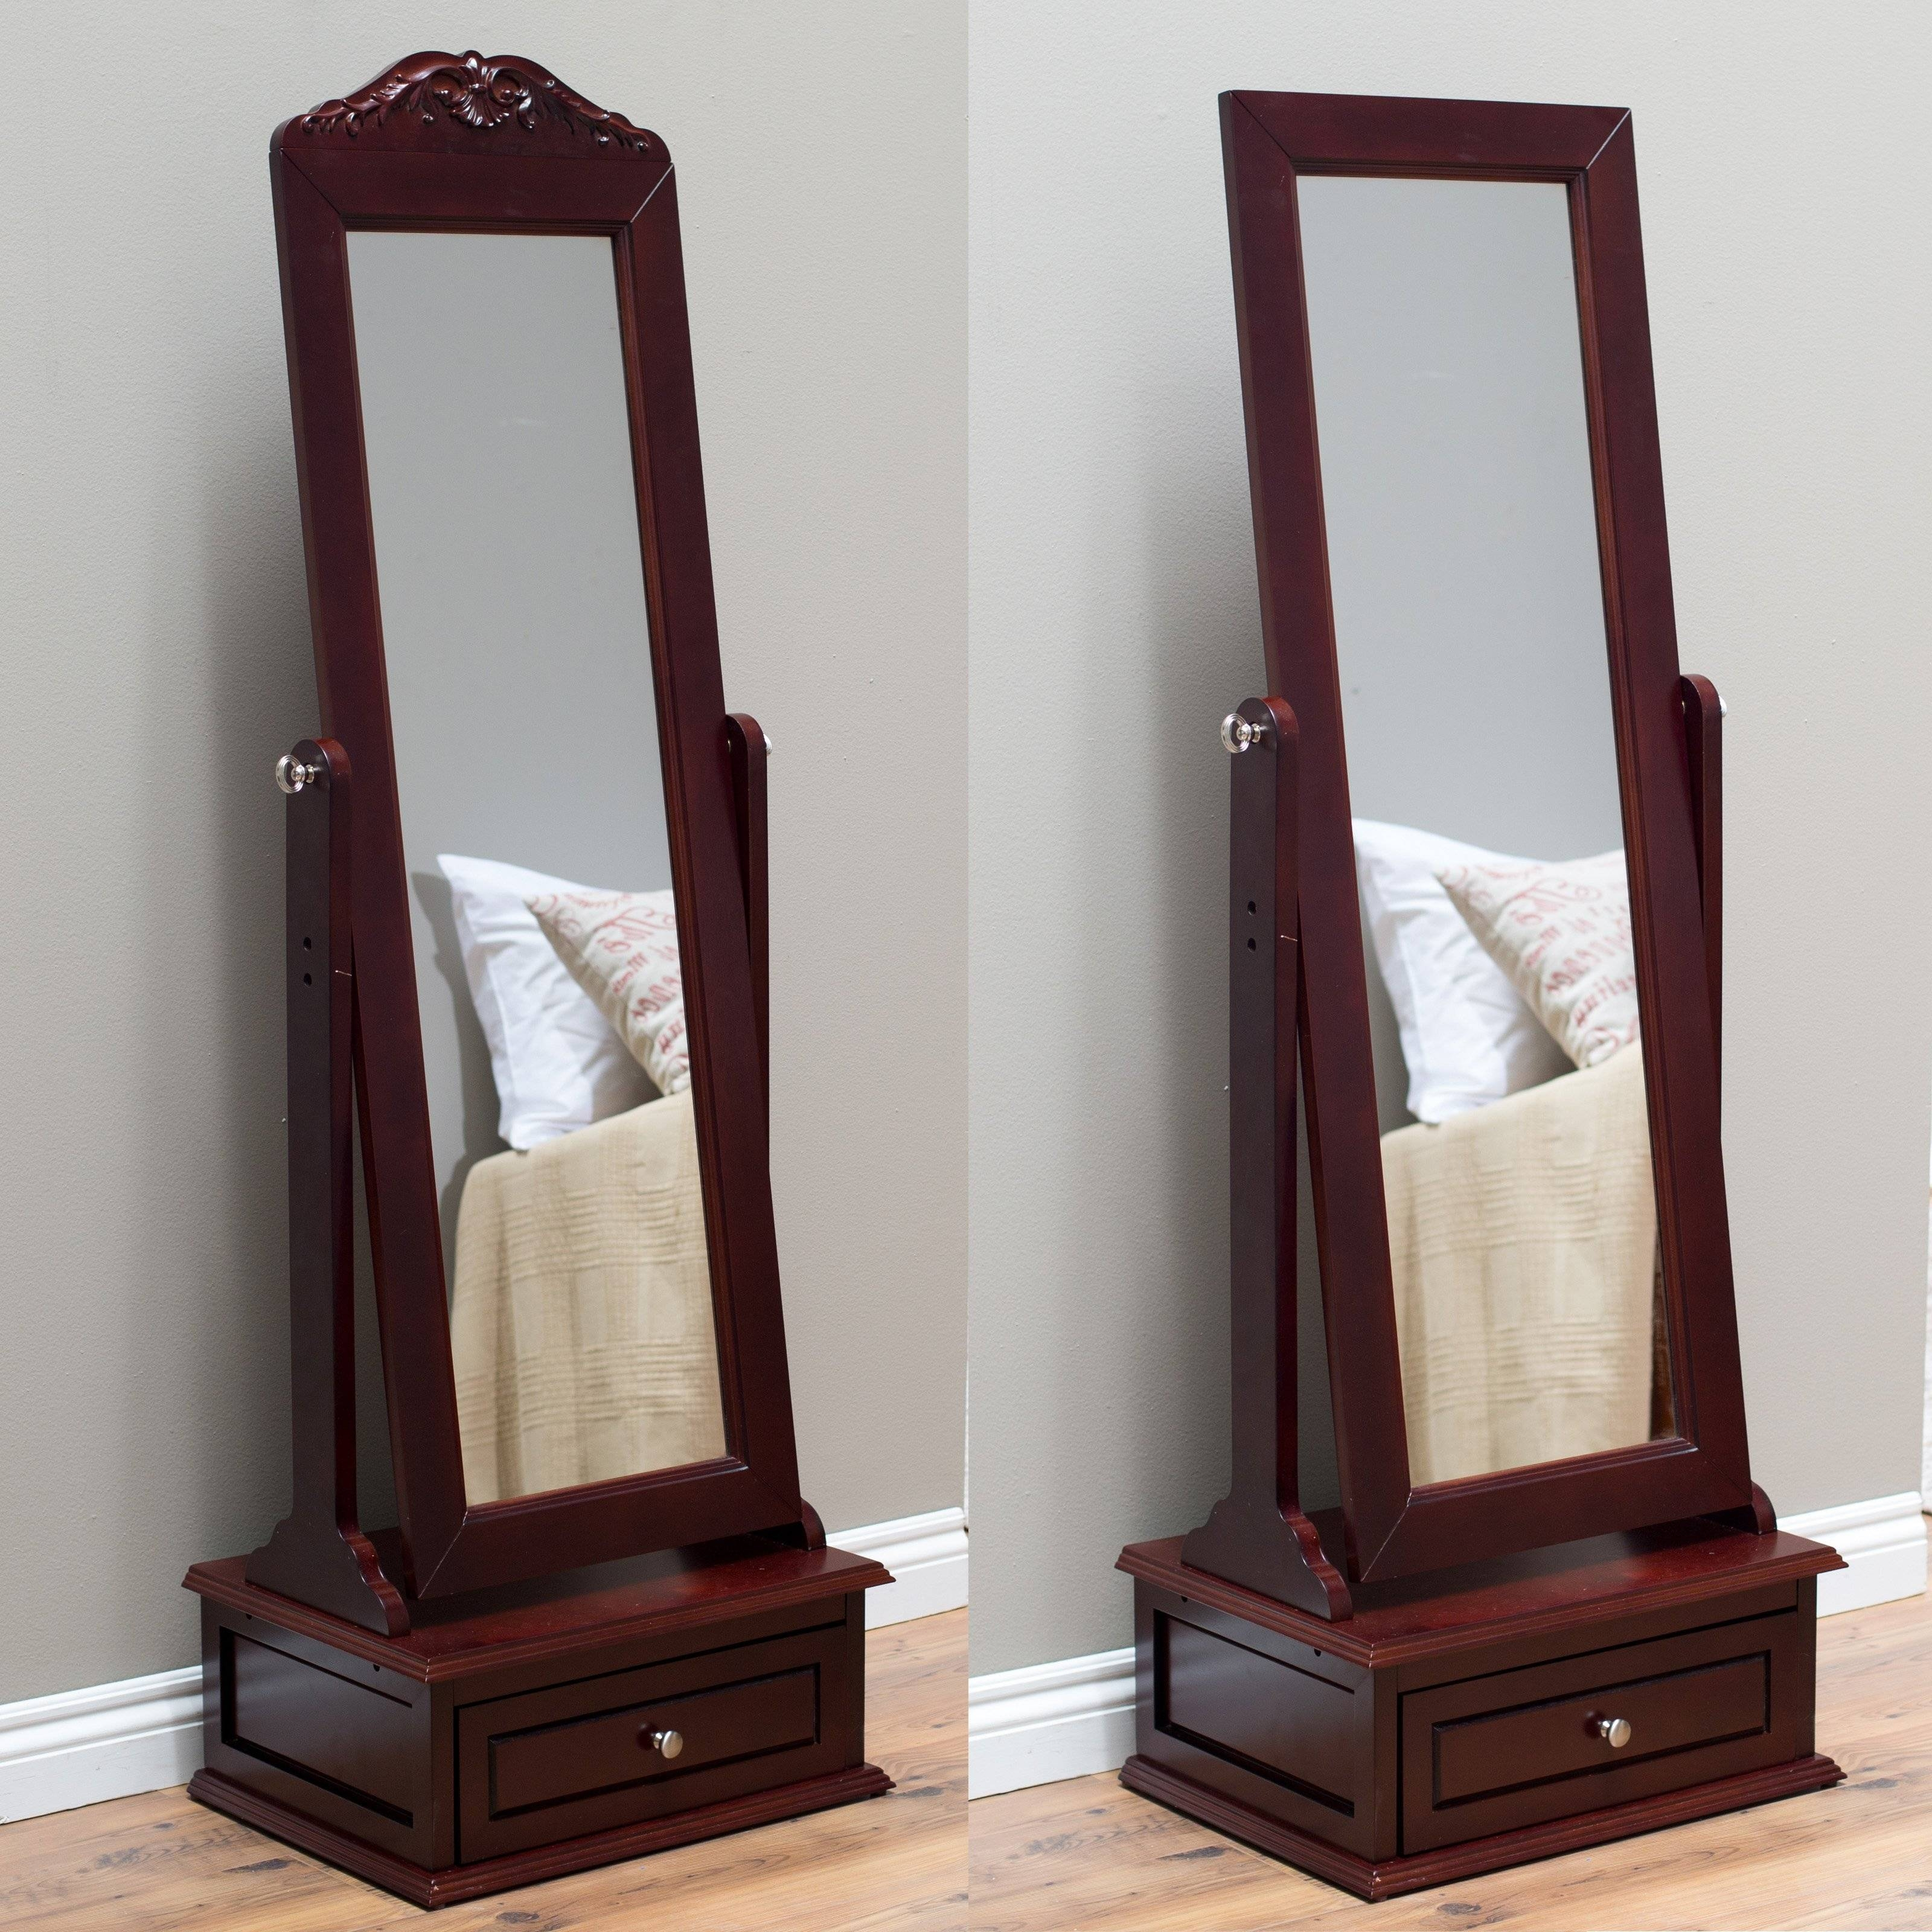 Belham Living Removable Decorative Top Cheval Mirror – Espresso Inside Cheval Free Standing Mirrors (View 13 of 15)